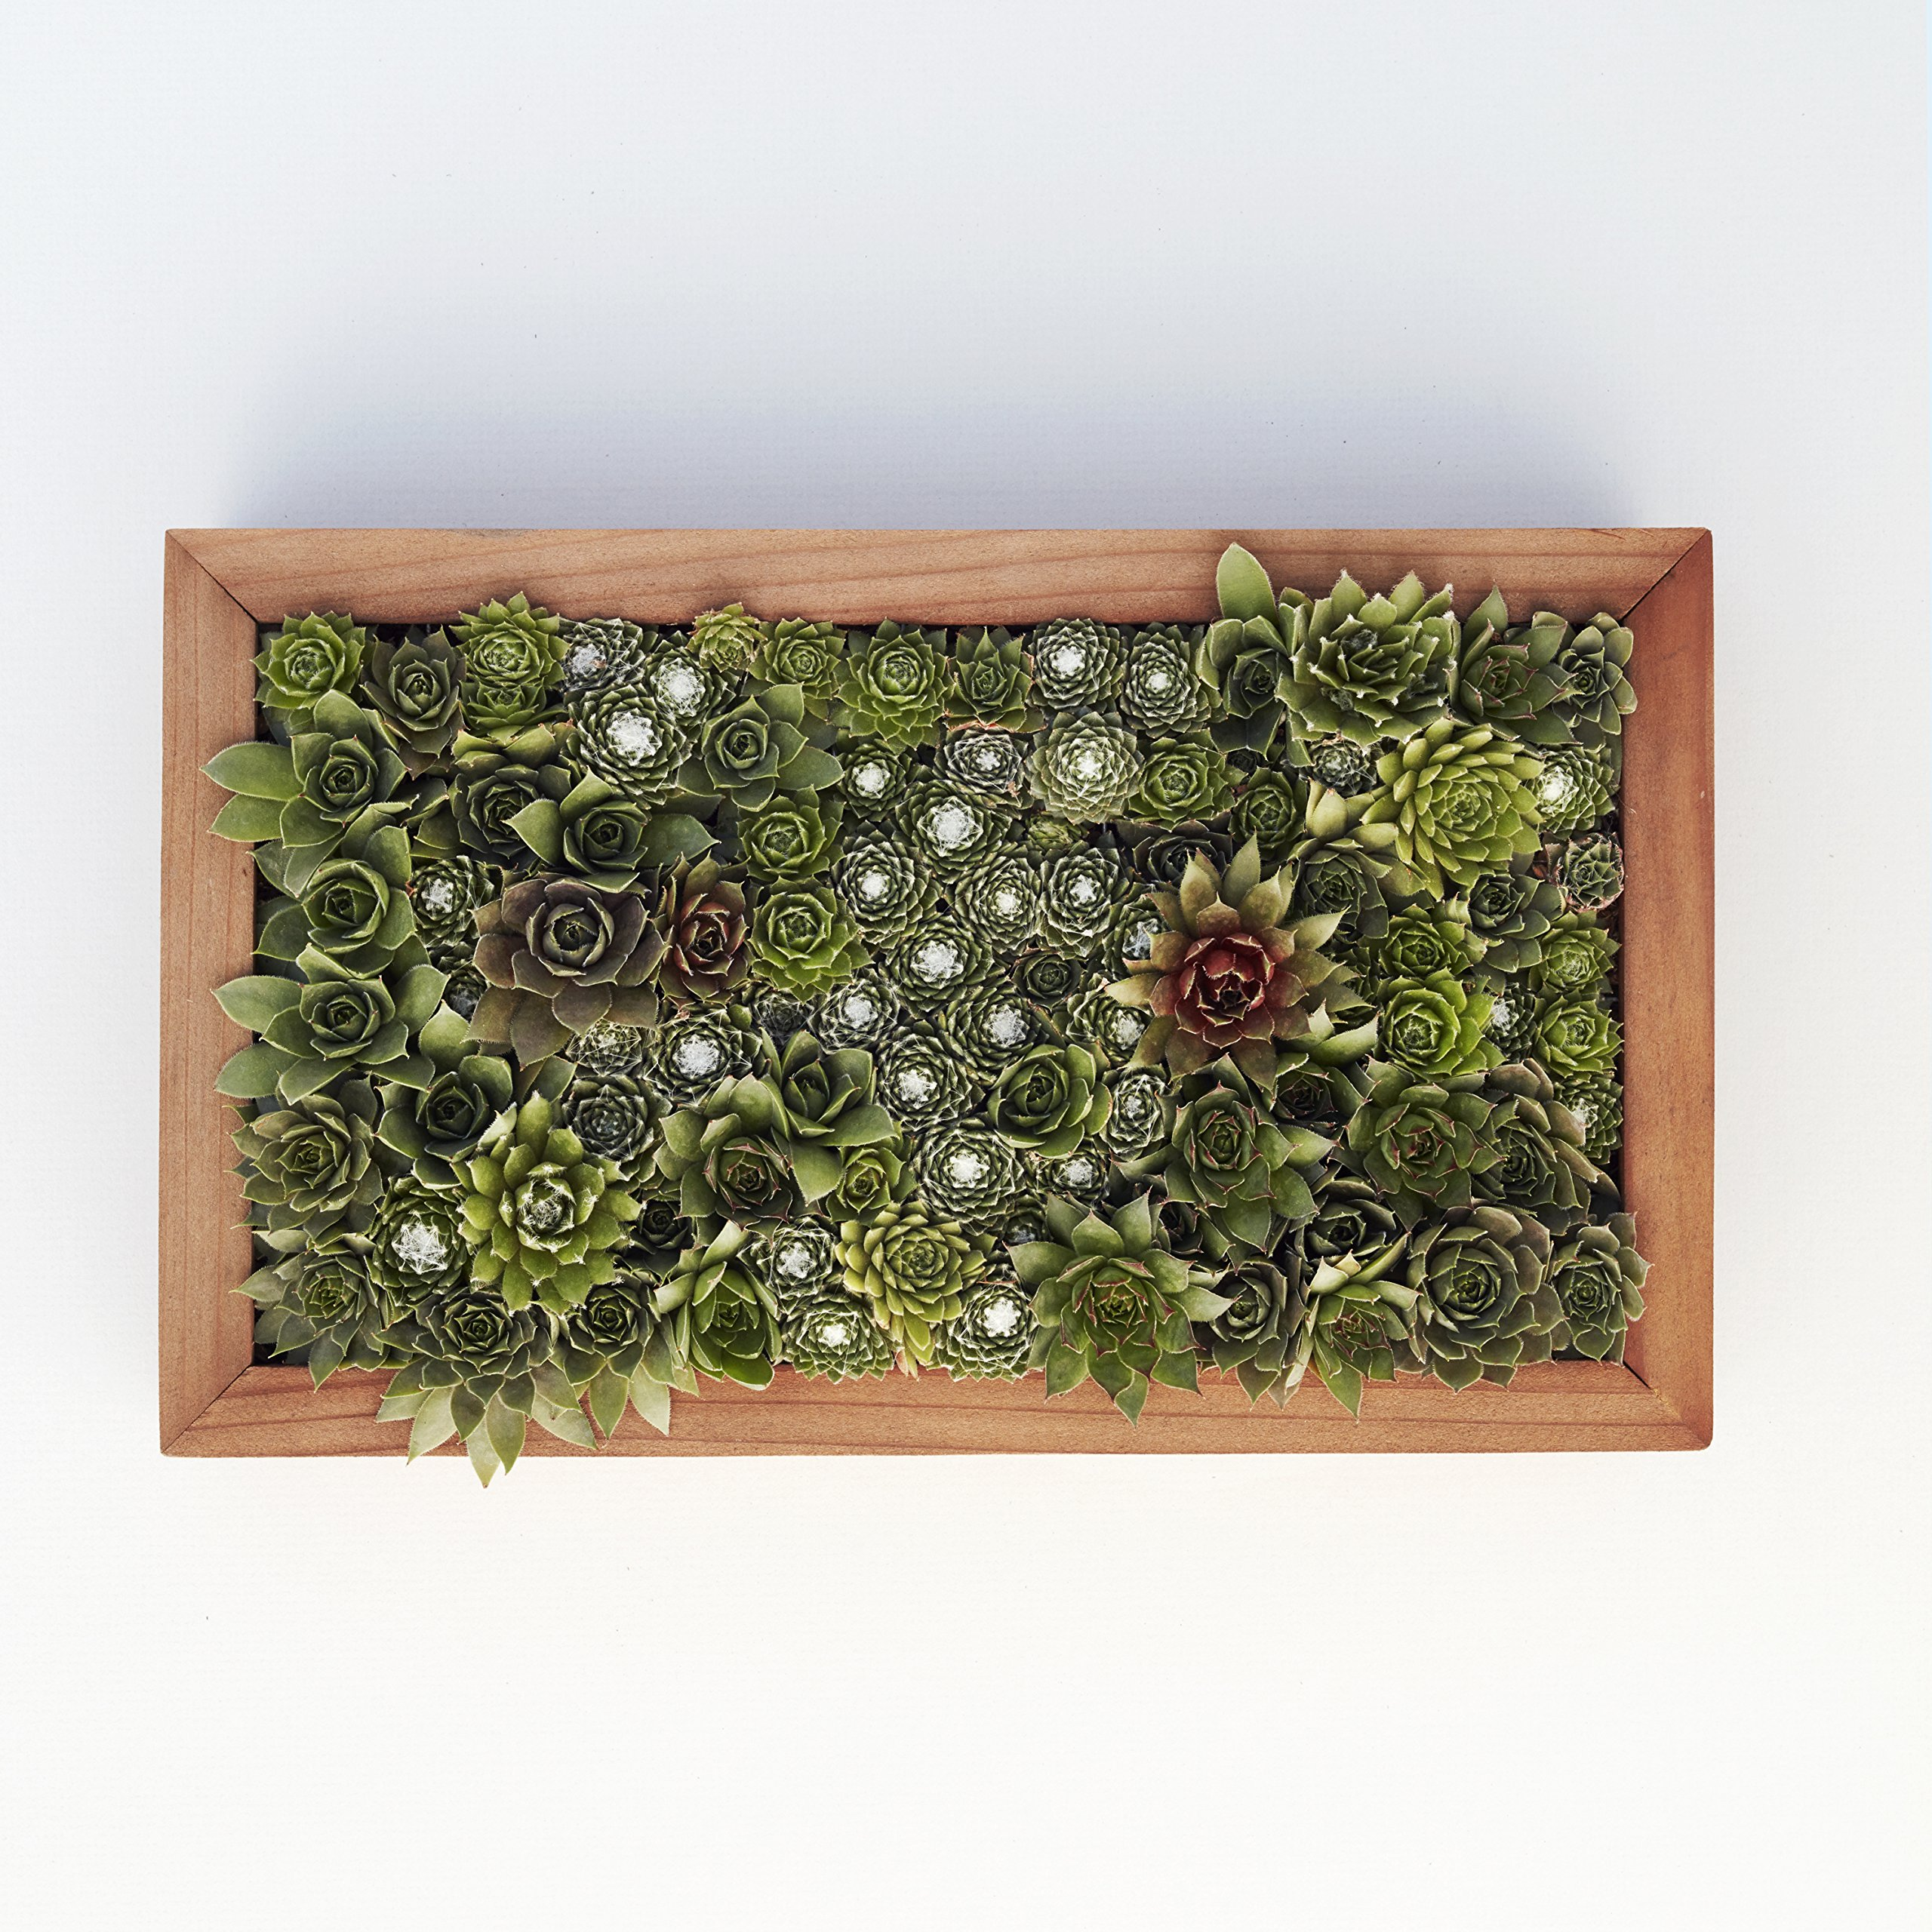 Succulent Gardens Medium Living Picture Planter DIY Kit, 6'' x 12'' Frame, Multicolor by Succulent Gardens (Image #5)